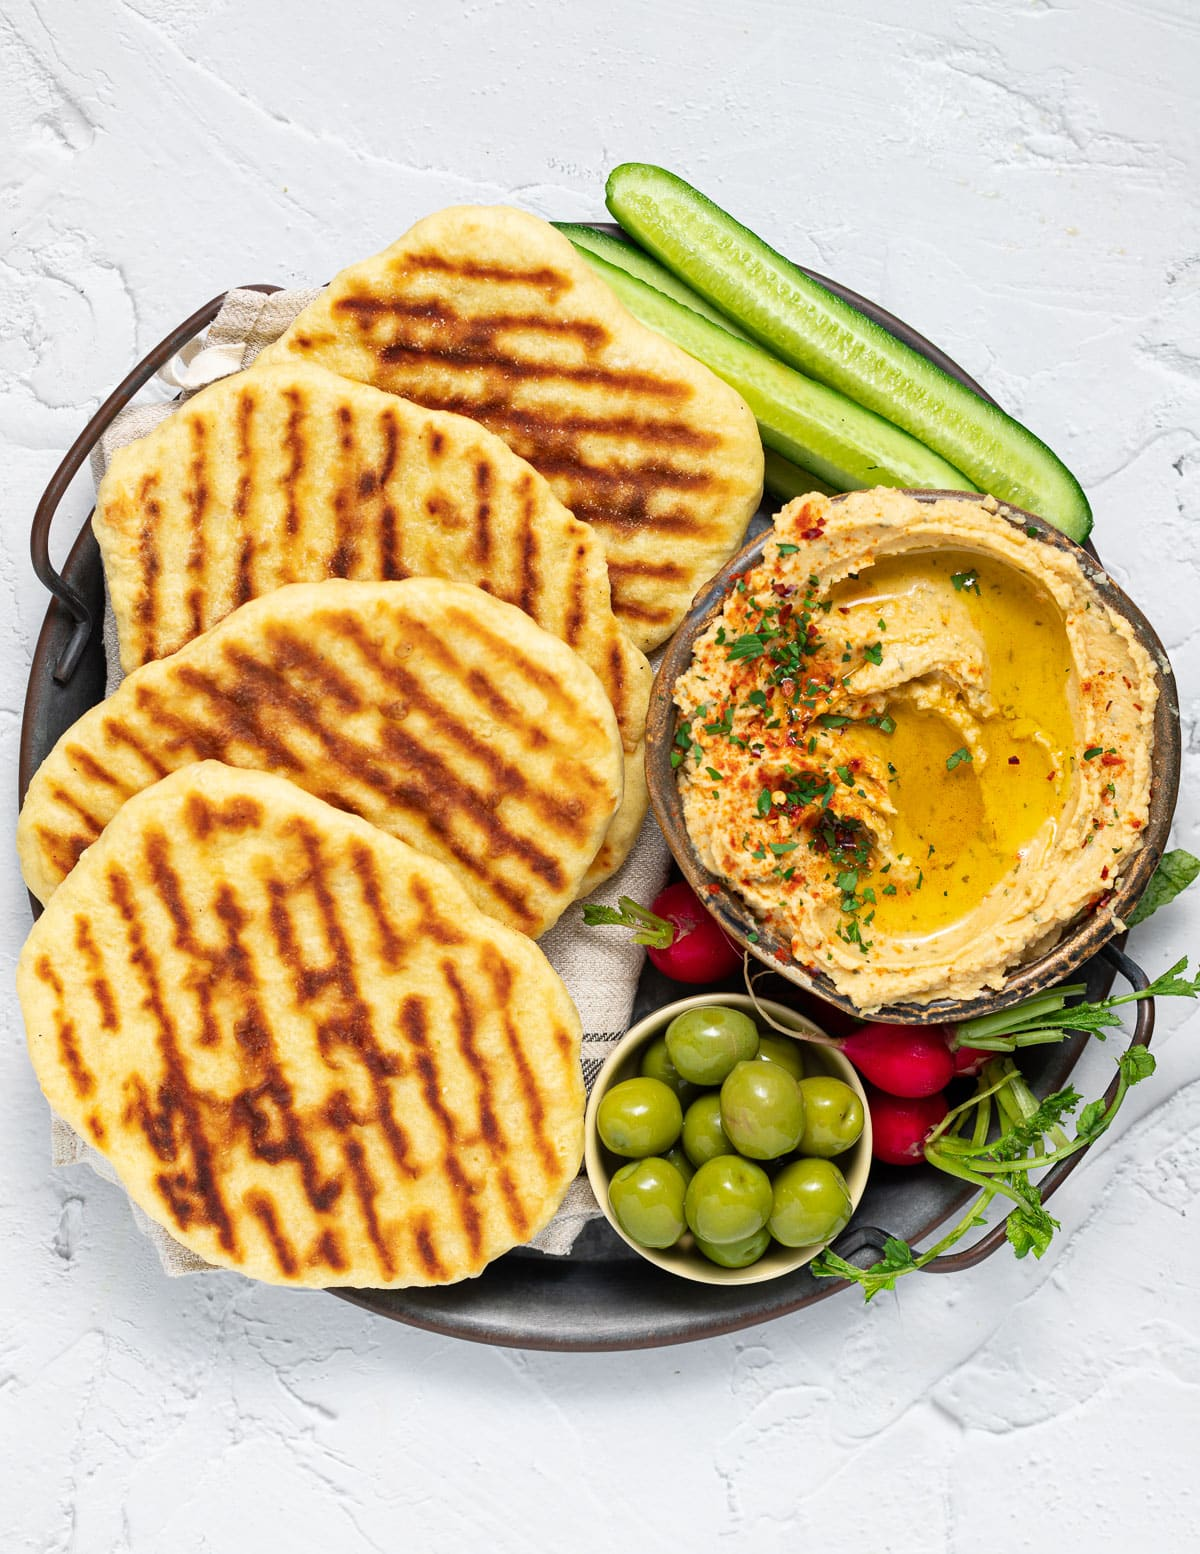 a platter with flatbreads, hummus and veggies